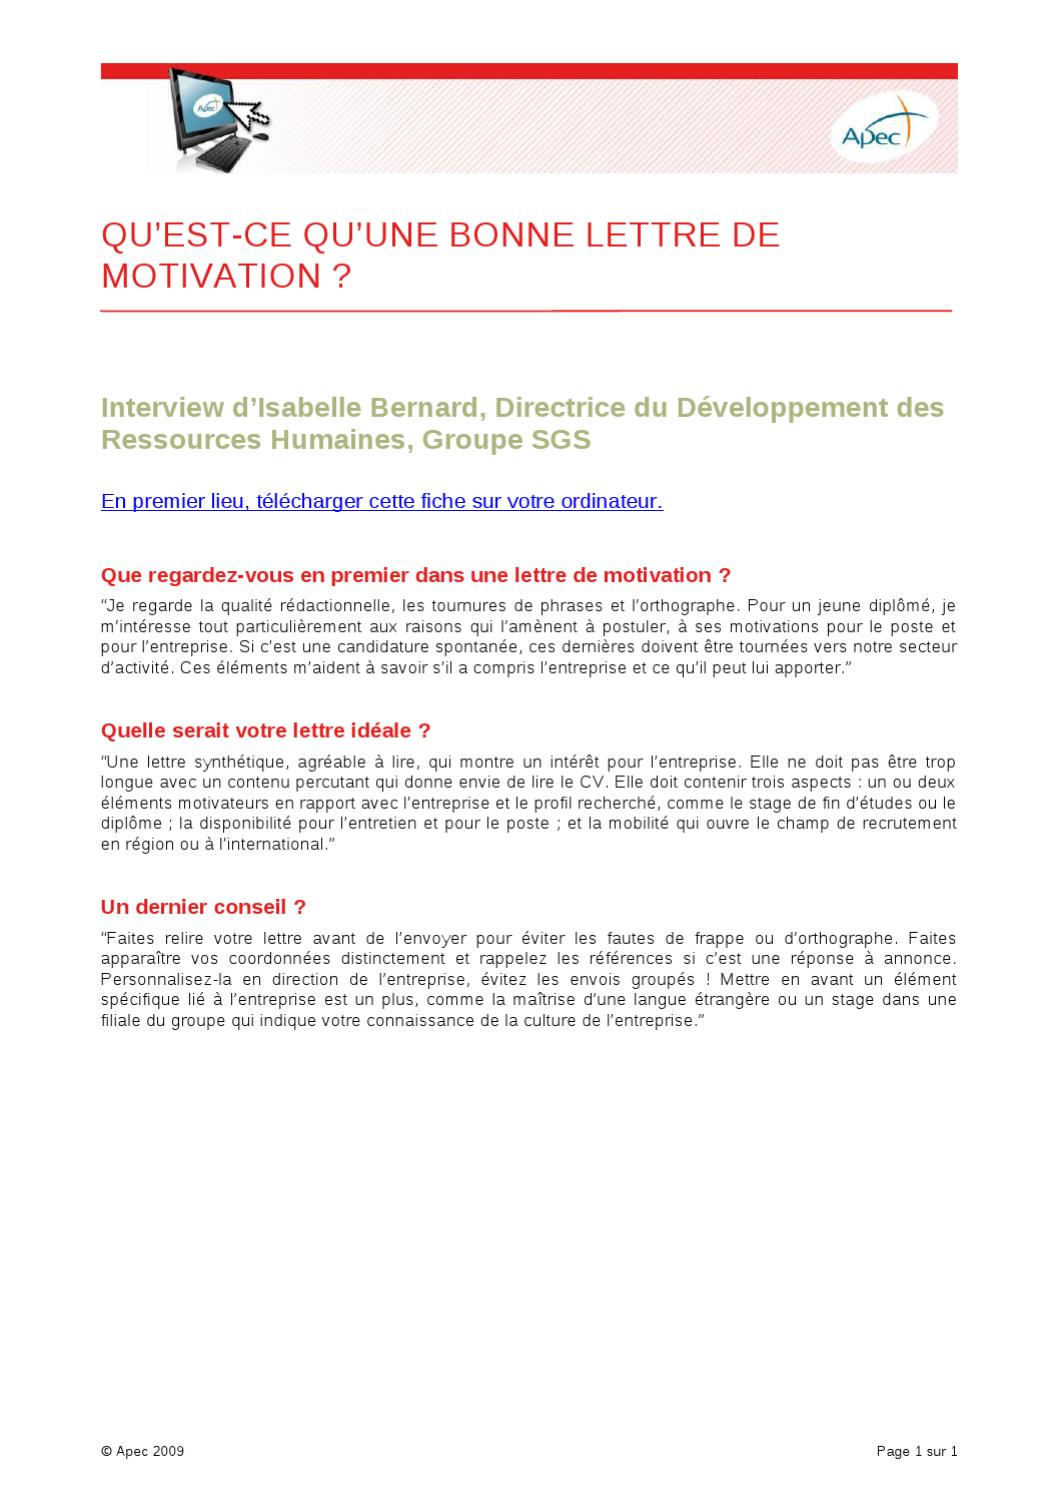 cv et lettre de motivation le quelle en premier